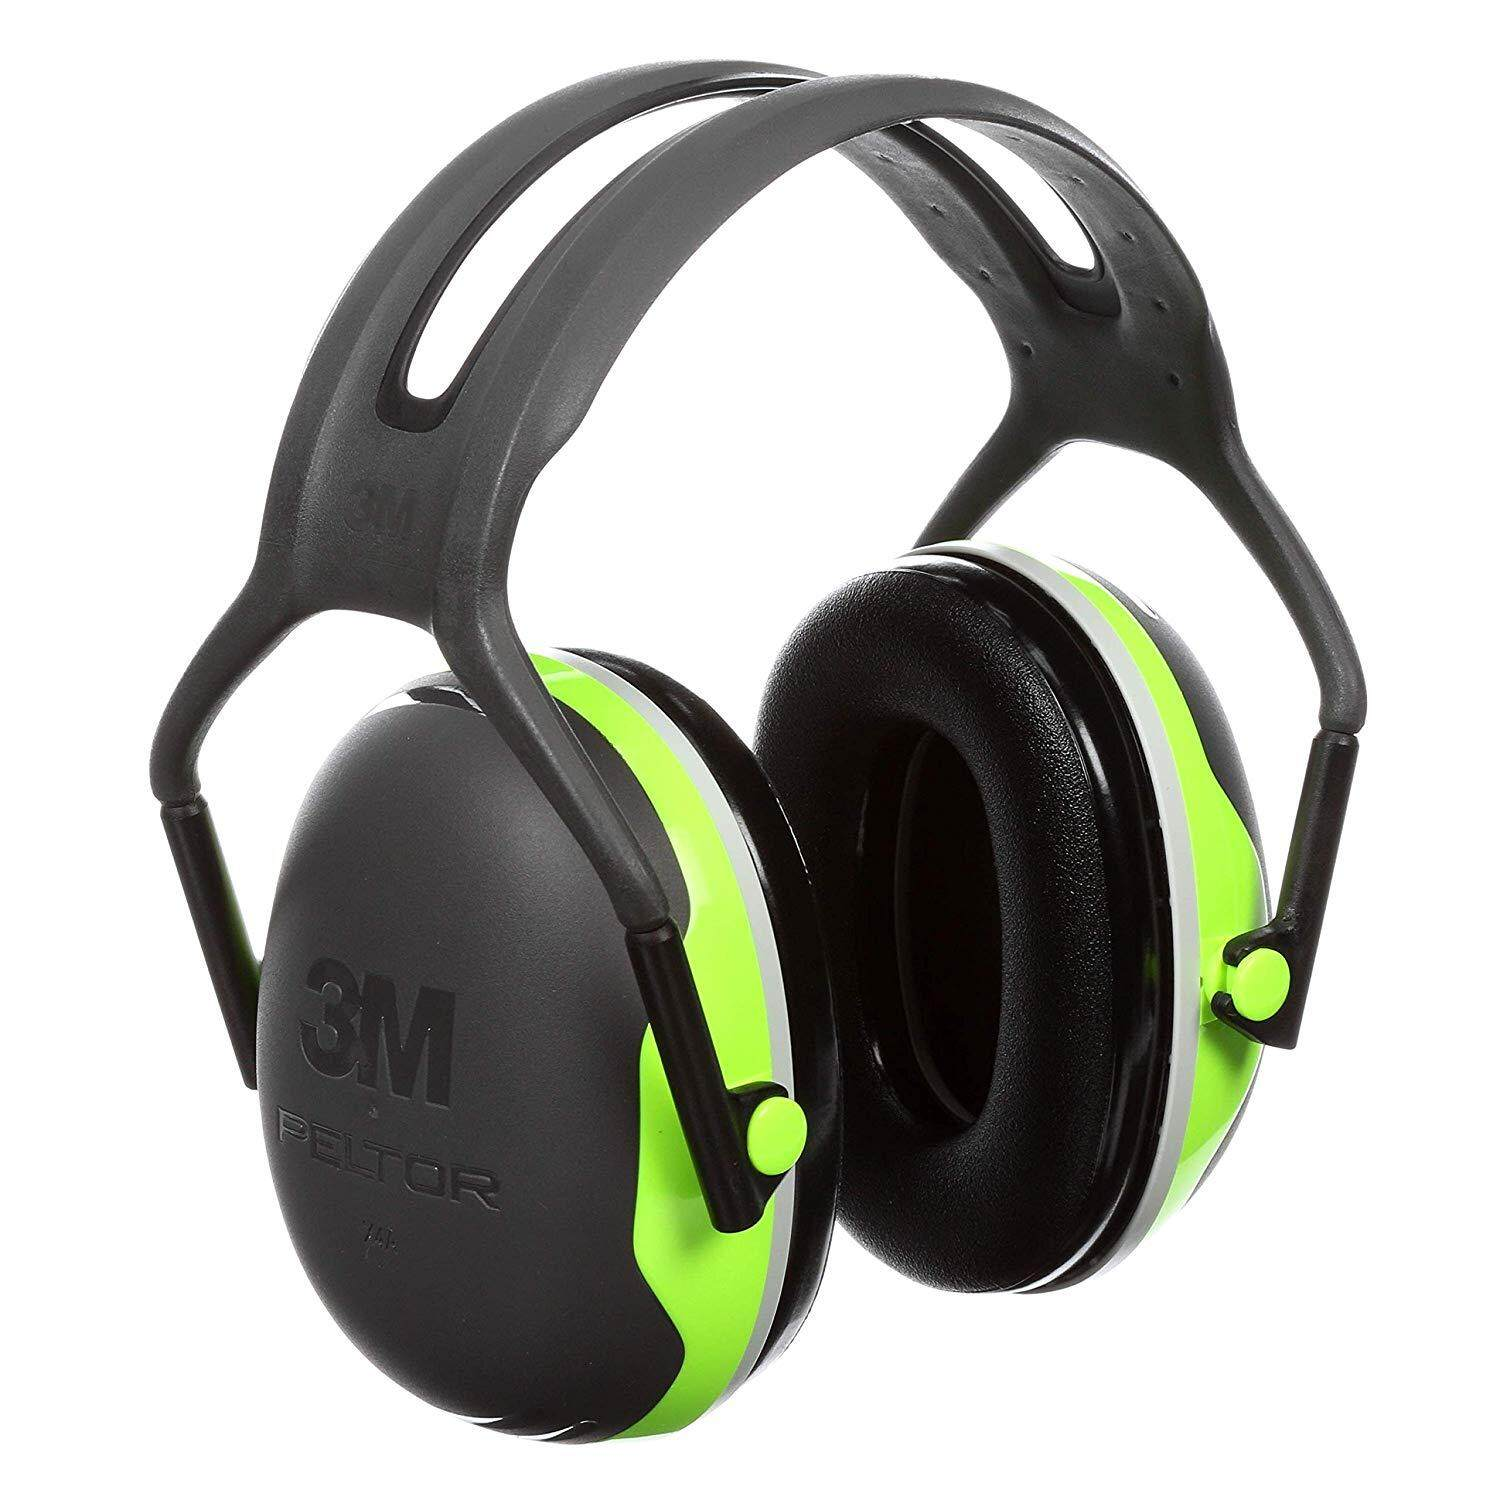 [ 100% ORIGINAL] 3M Peltor X-Series Over-the-Head Earmuffs, NRR 27 dB, One Size Fits Most, Black/Chartreuse X4A